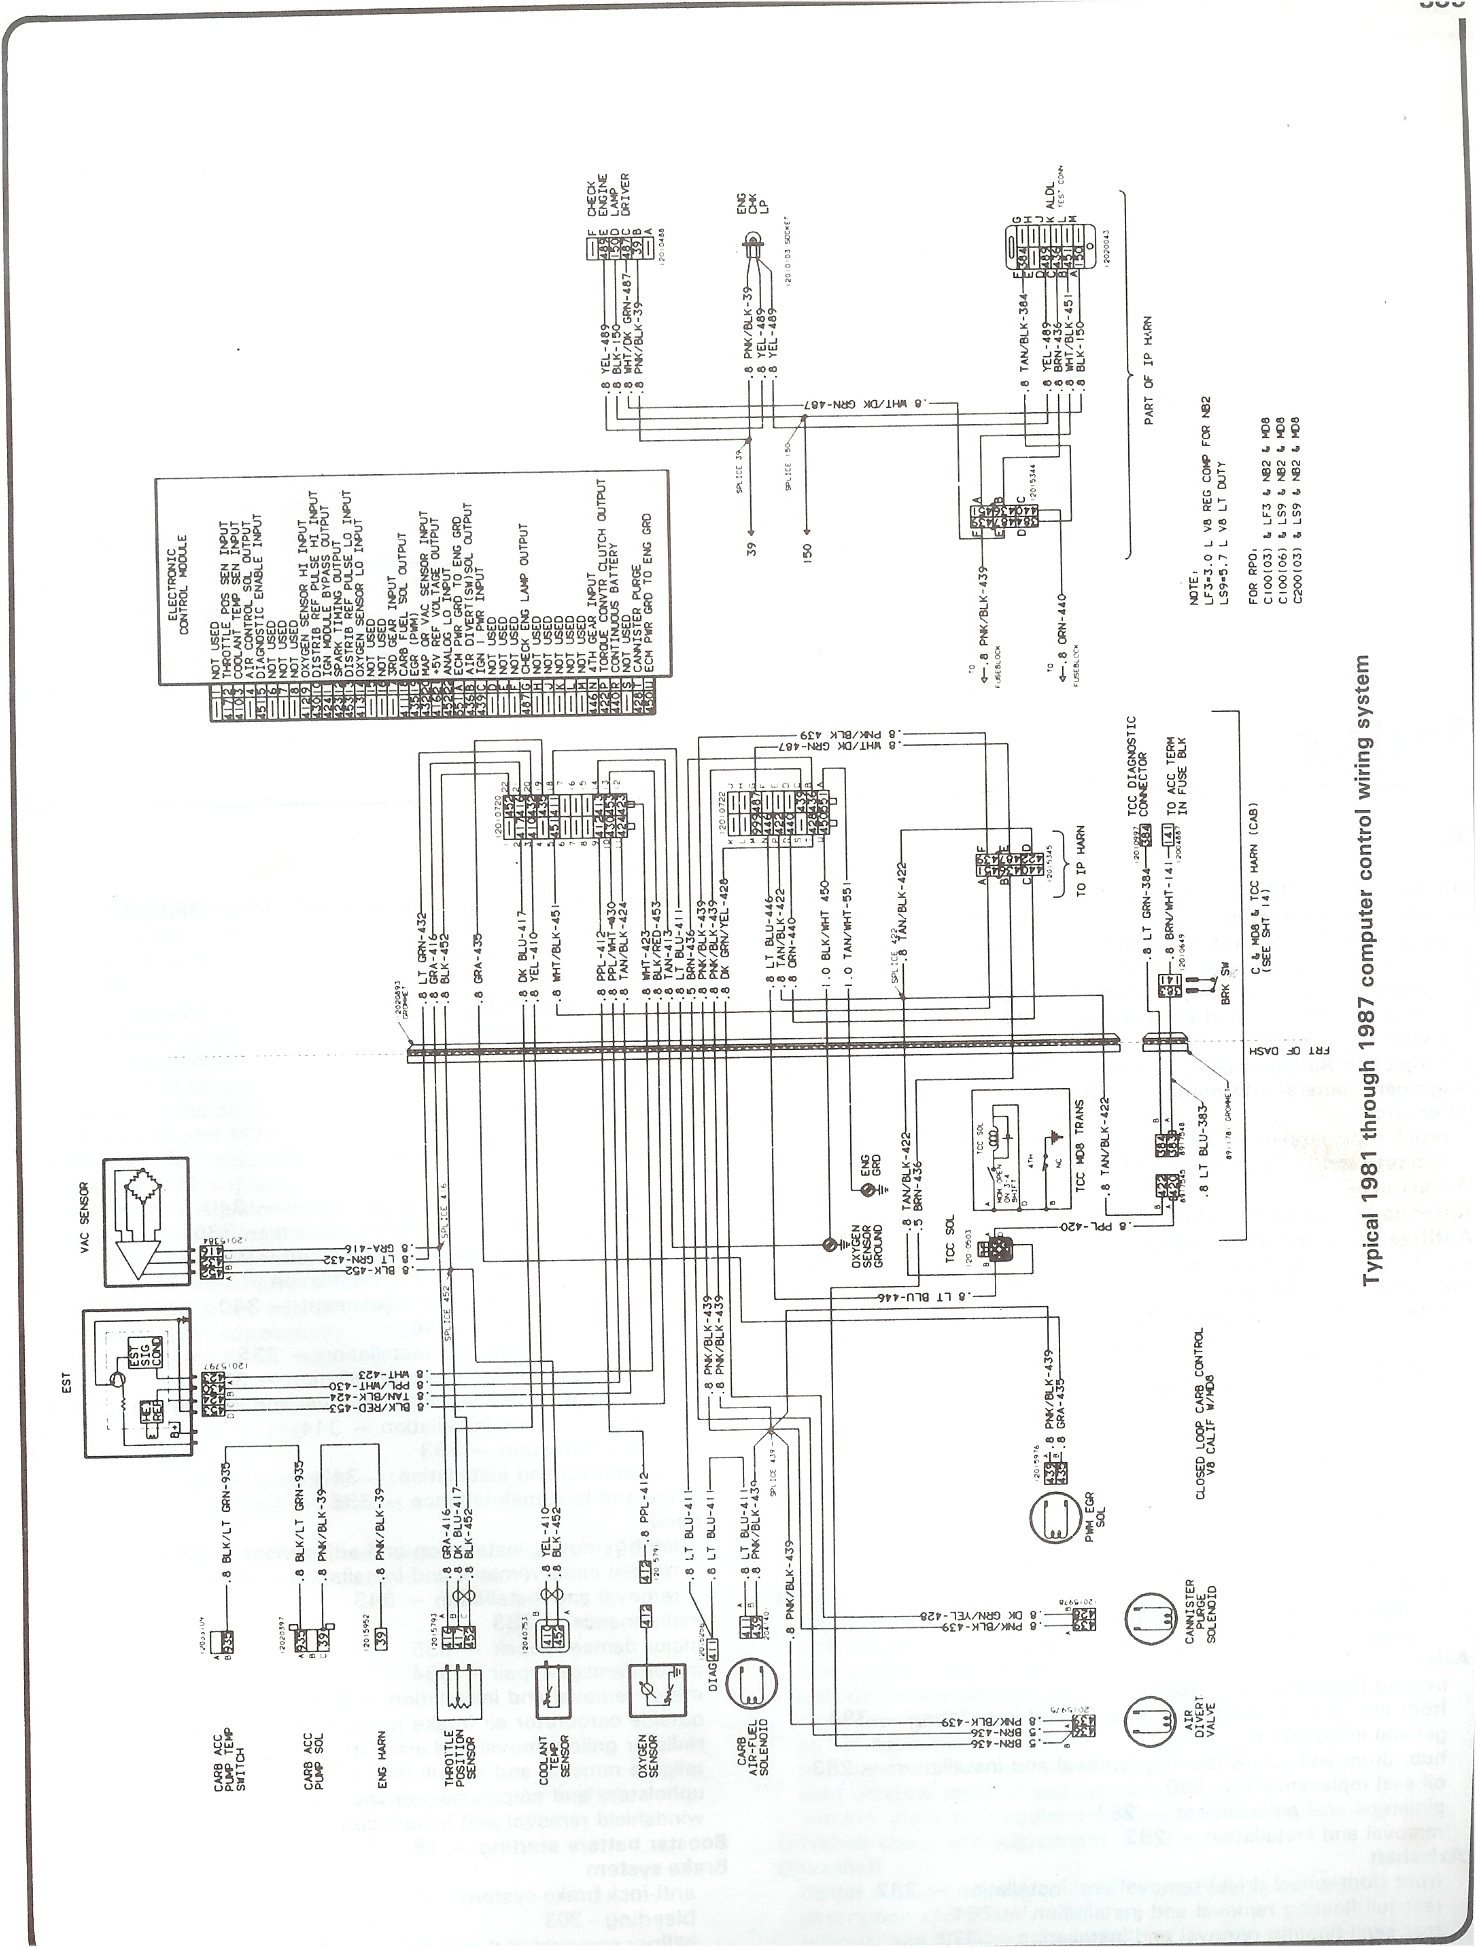 83 chevy truck wiring diagram sel  u2022 wiring diagram for free